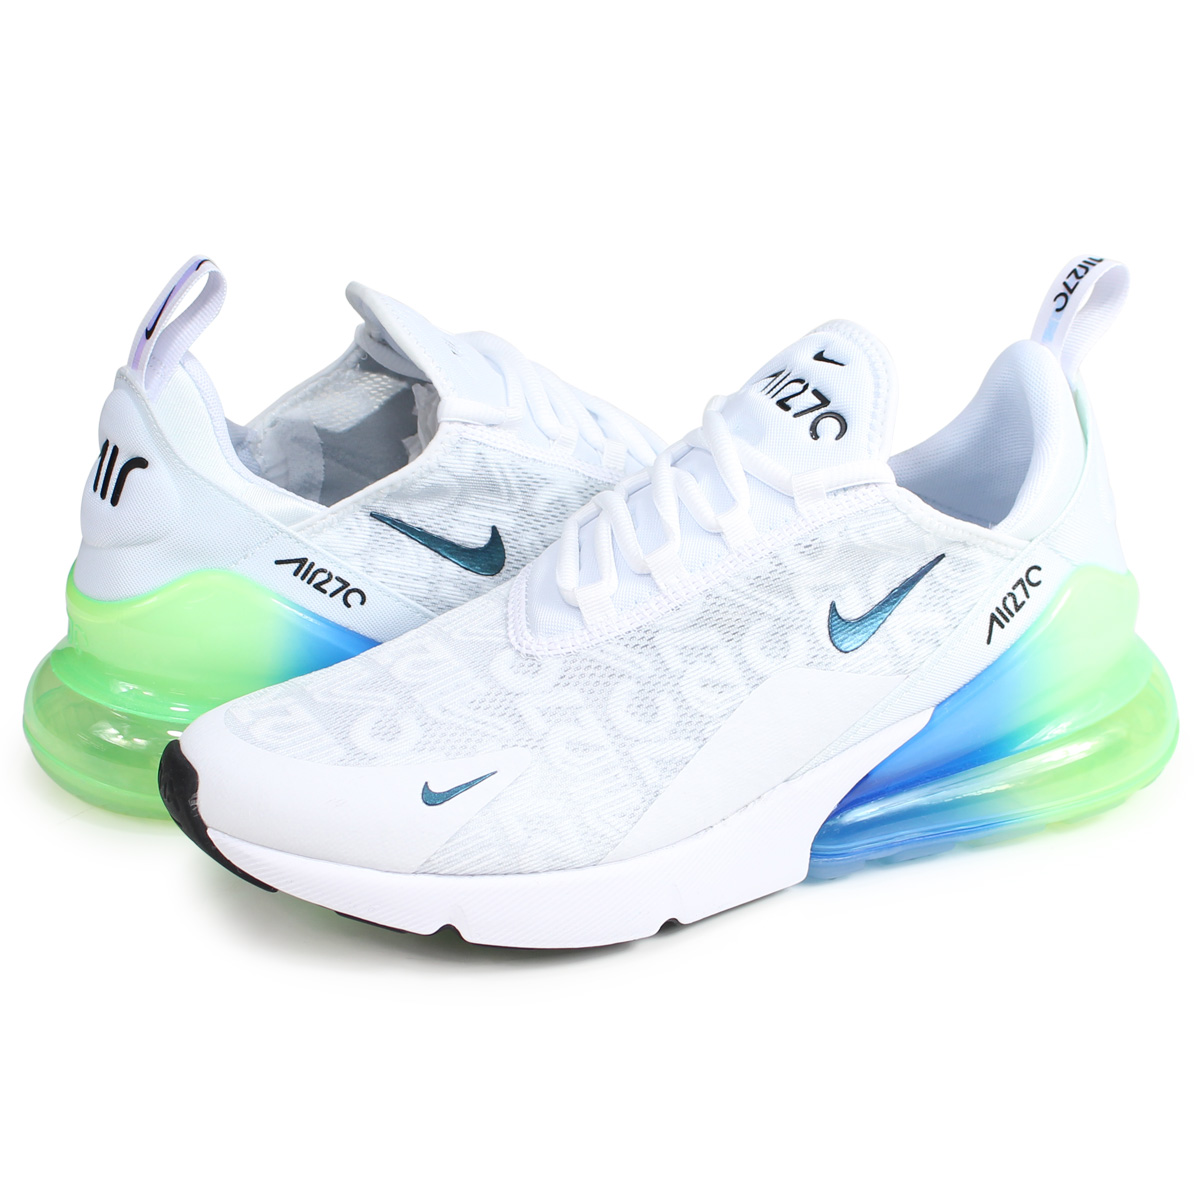 Nike NIKE Air Max 270 sneakers men AIR MAX 270 SE white AQ9164 100 [load planned Shinnyu load in reservation product 214 containing]